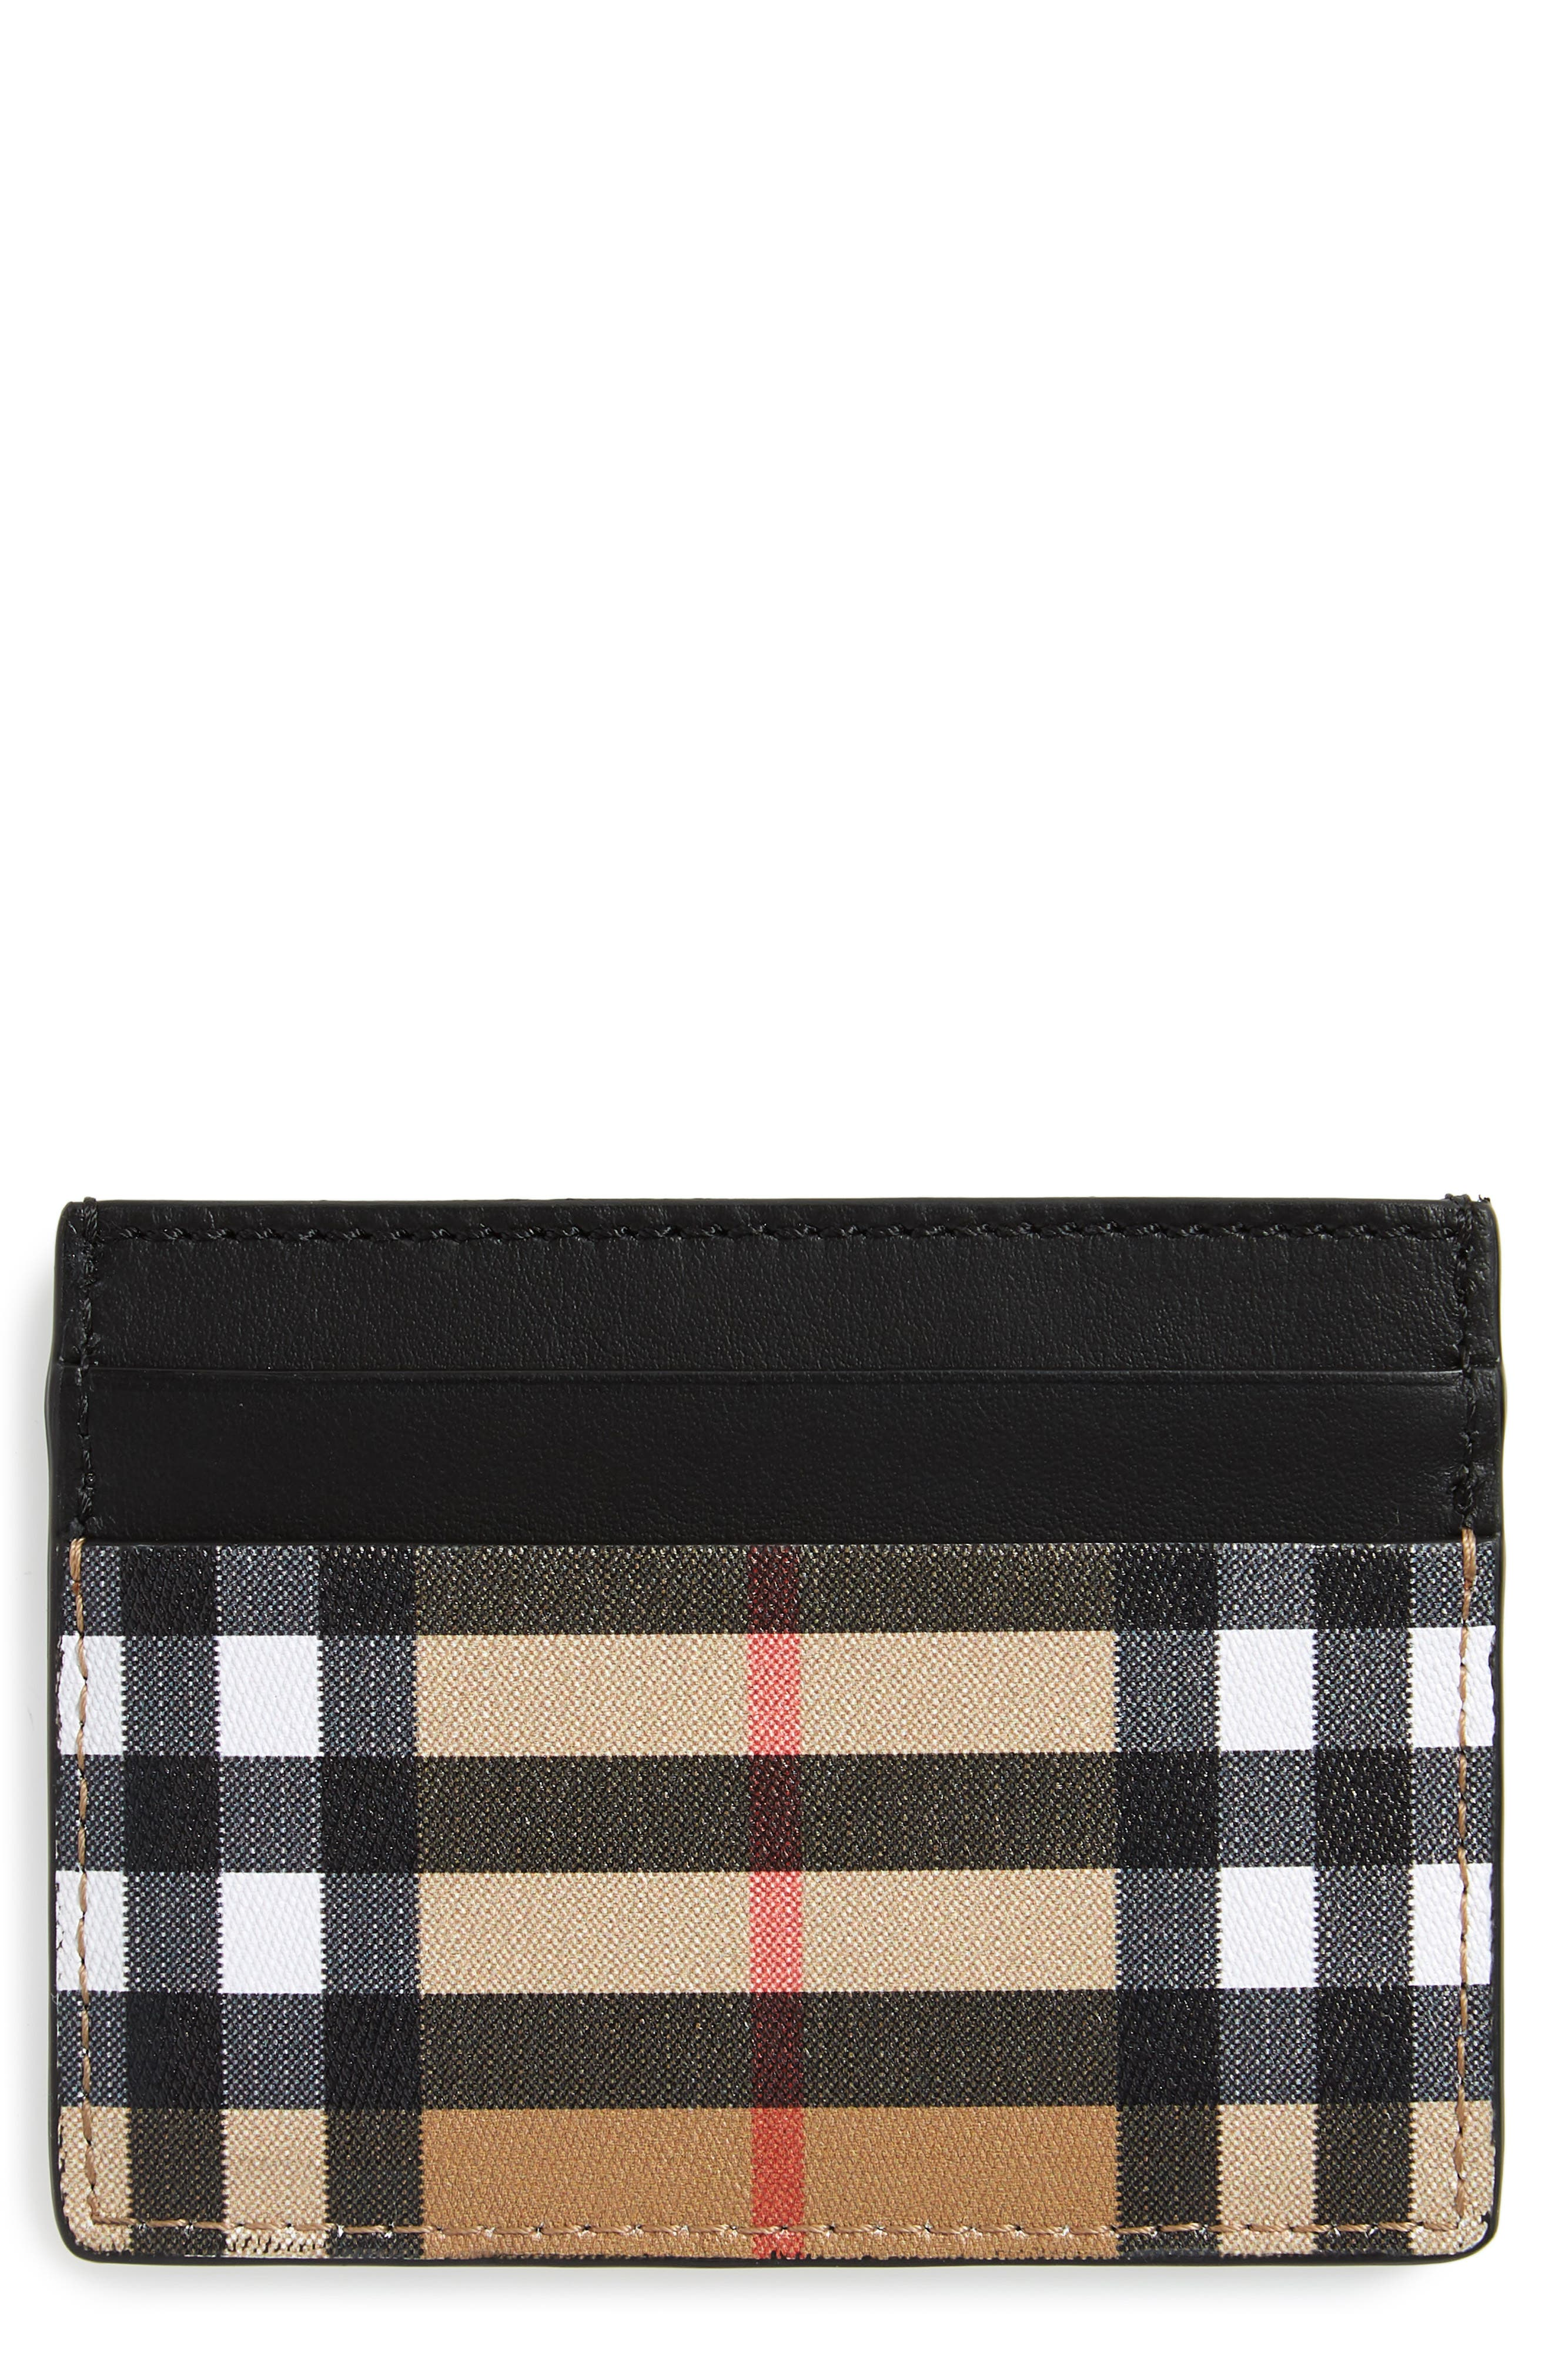 Horseferry Leather Card Case,                         Main,                         color, BLACK